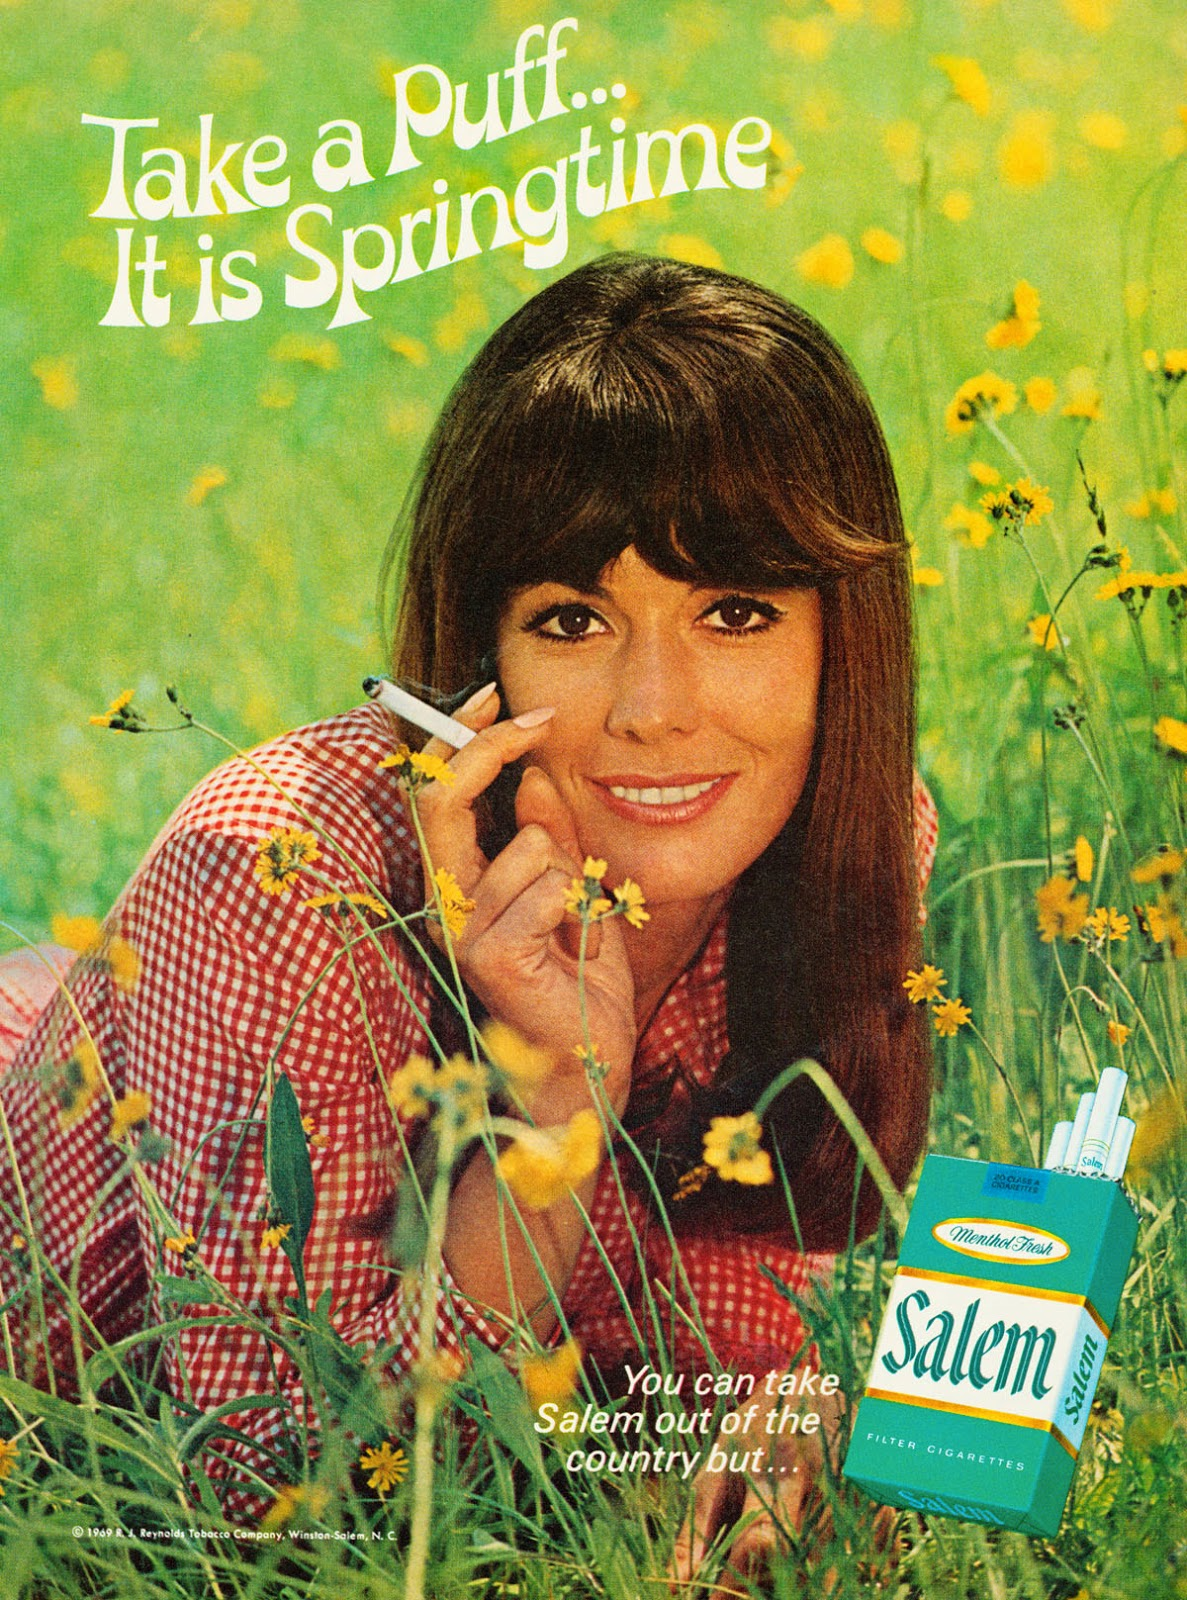 """""""Springtime"""" – 15 Greenery Tobacco Advertisements of Salem in the 1960s and '70s"""